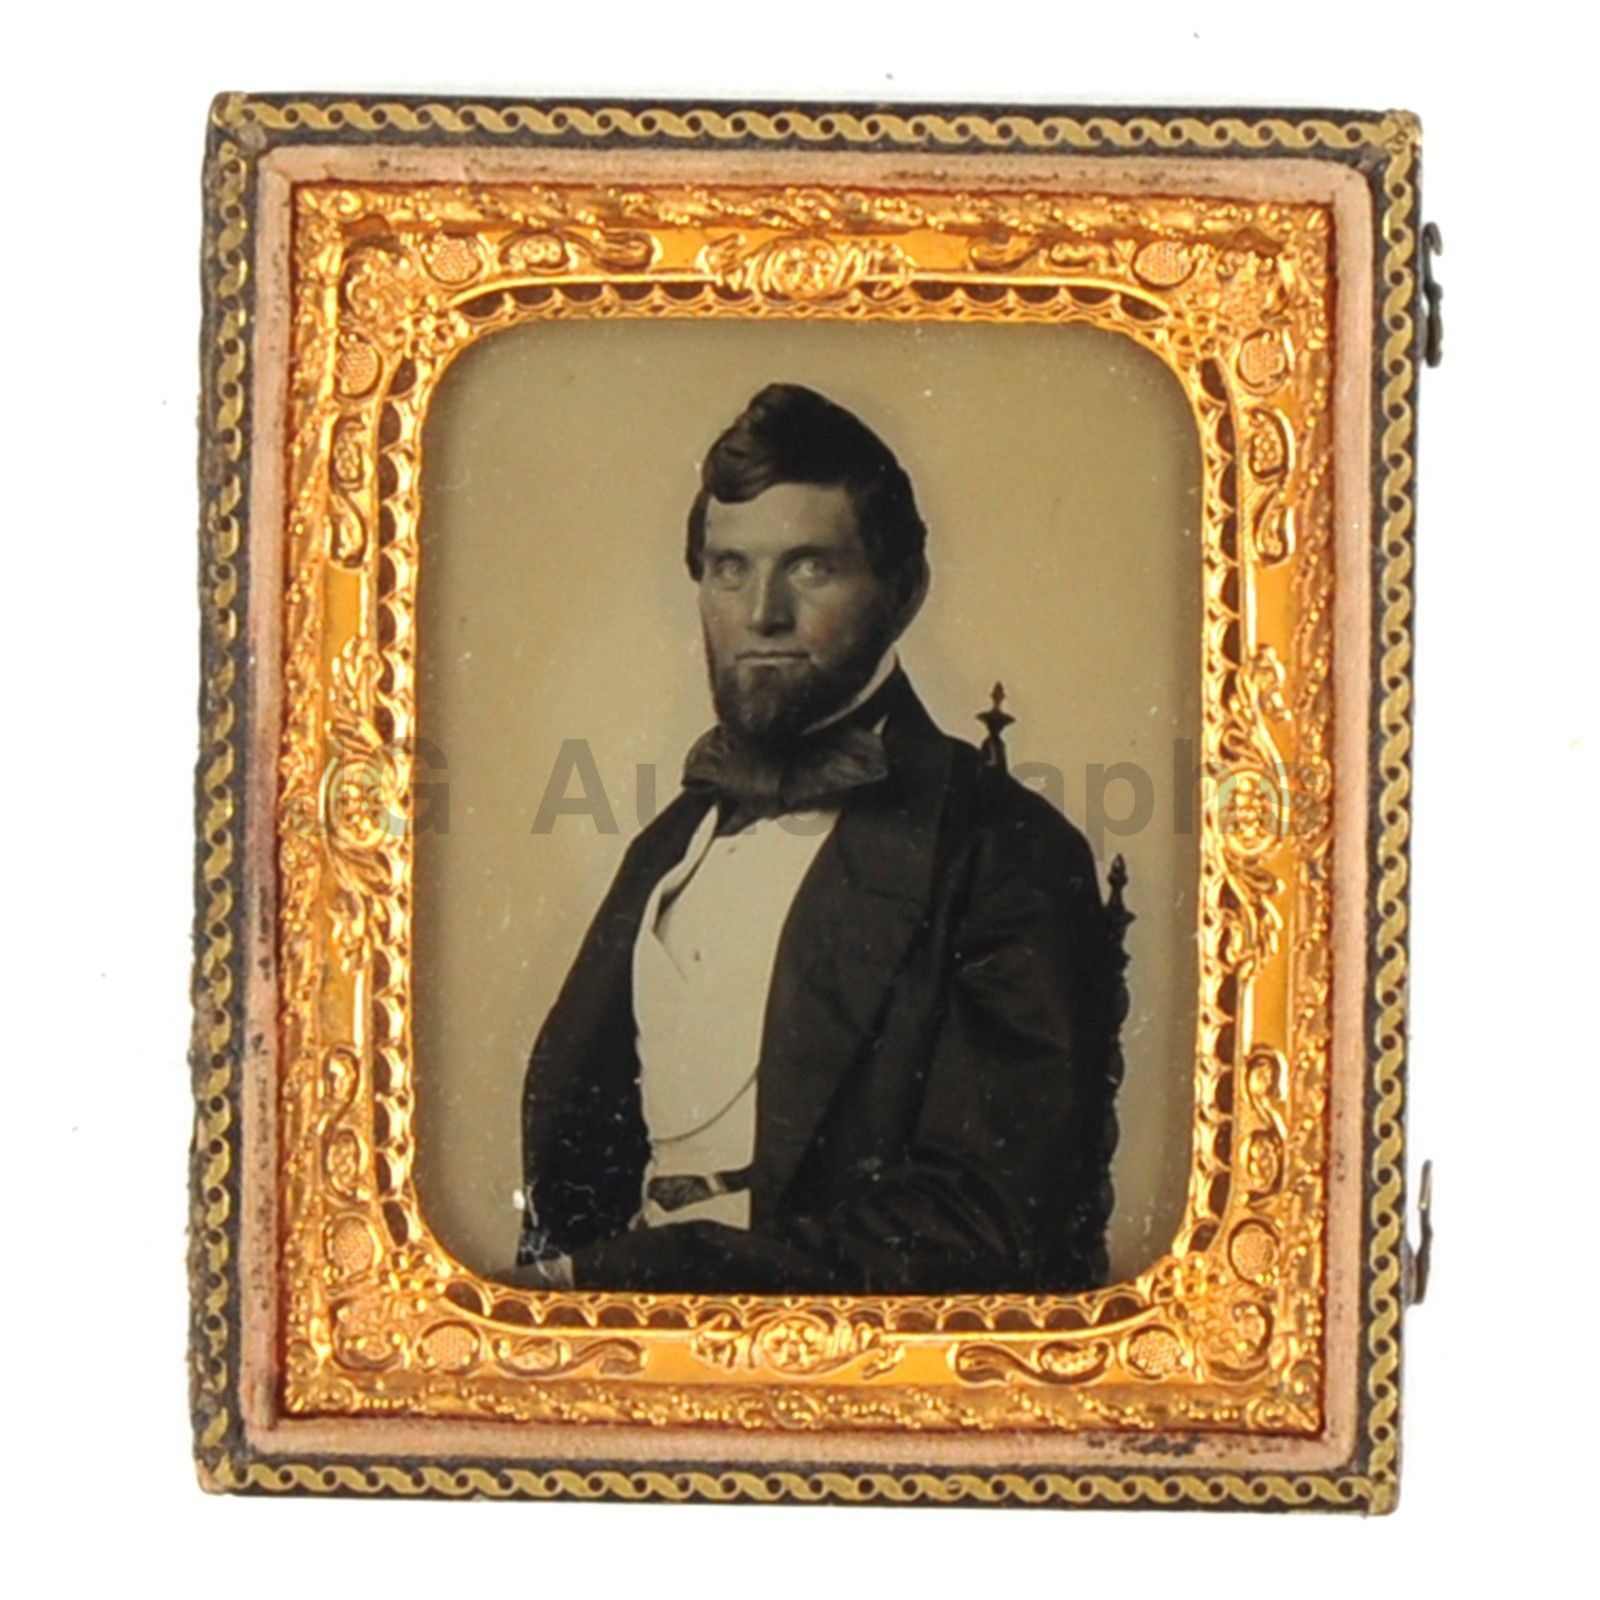 Sixth Plate Ambrotype 19th Century Man Photograph in Vintage Case | eBay